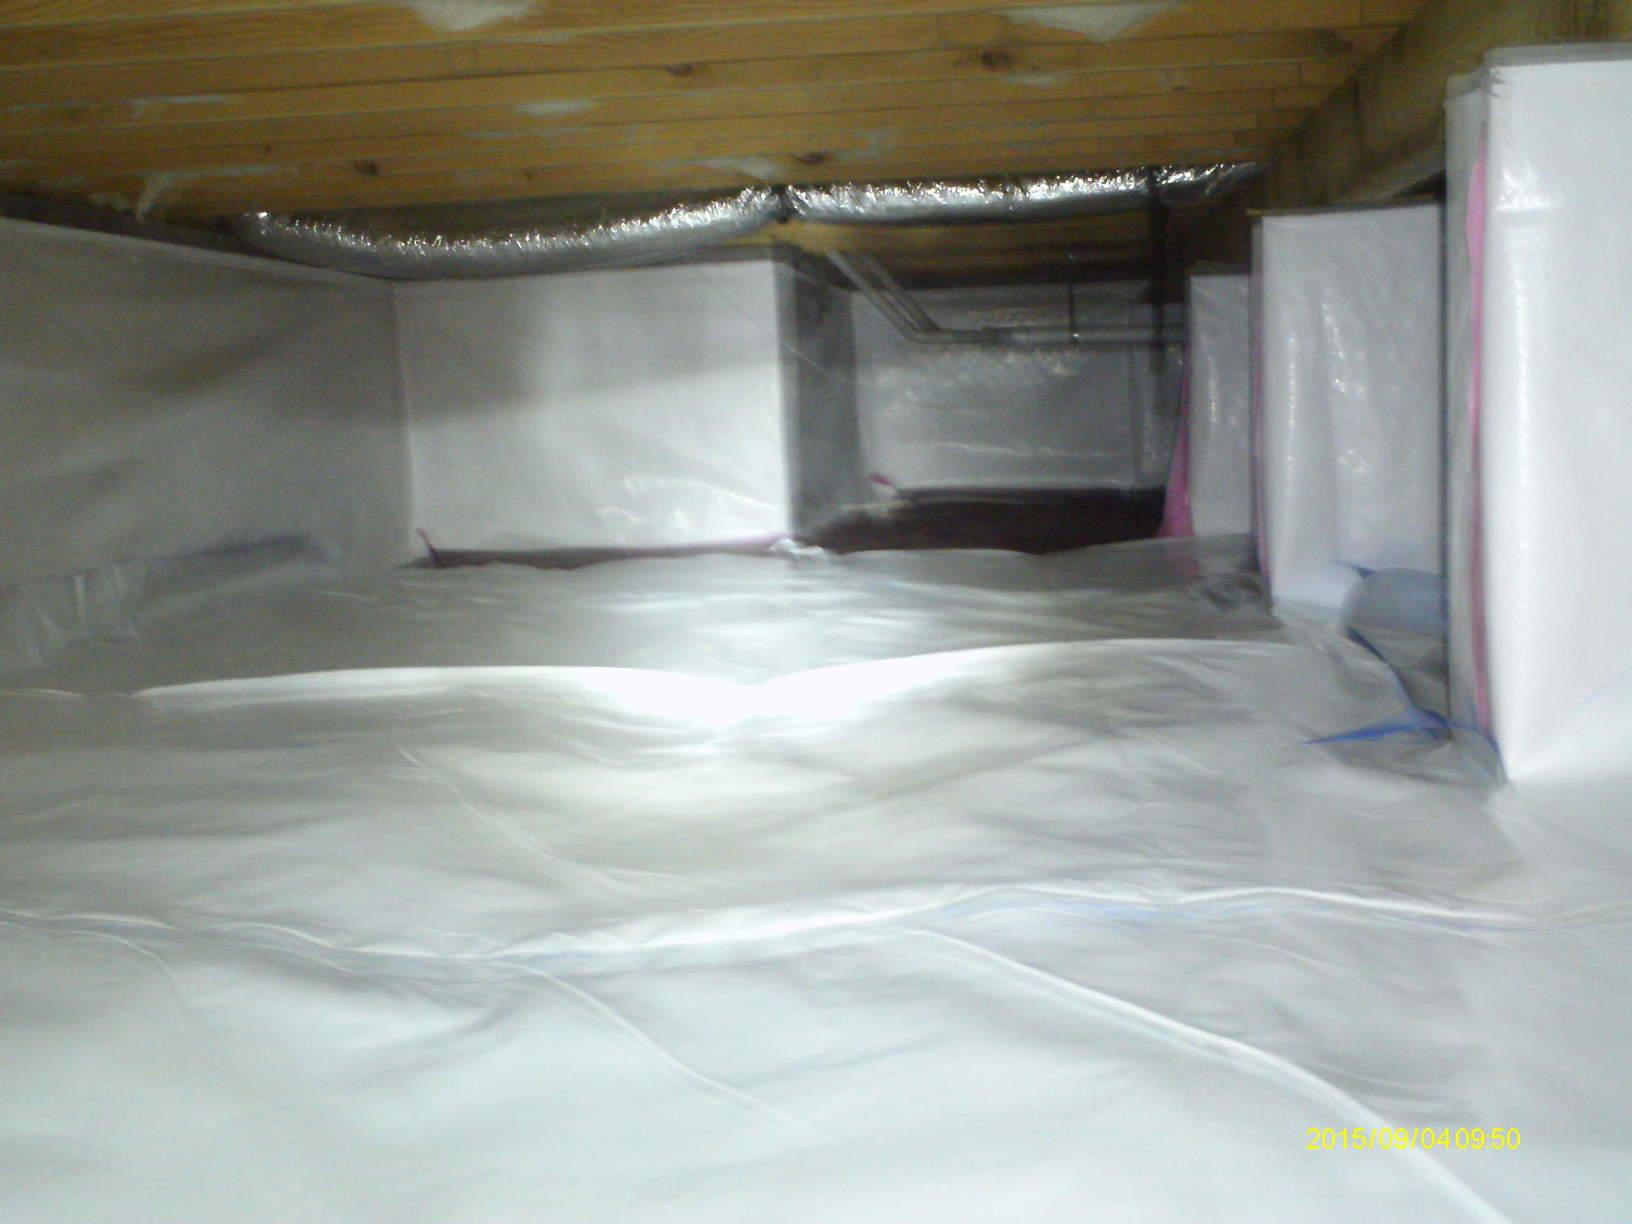 Clean Space in McMinnville, TN! - After Photo